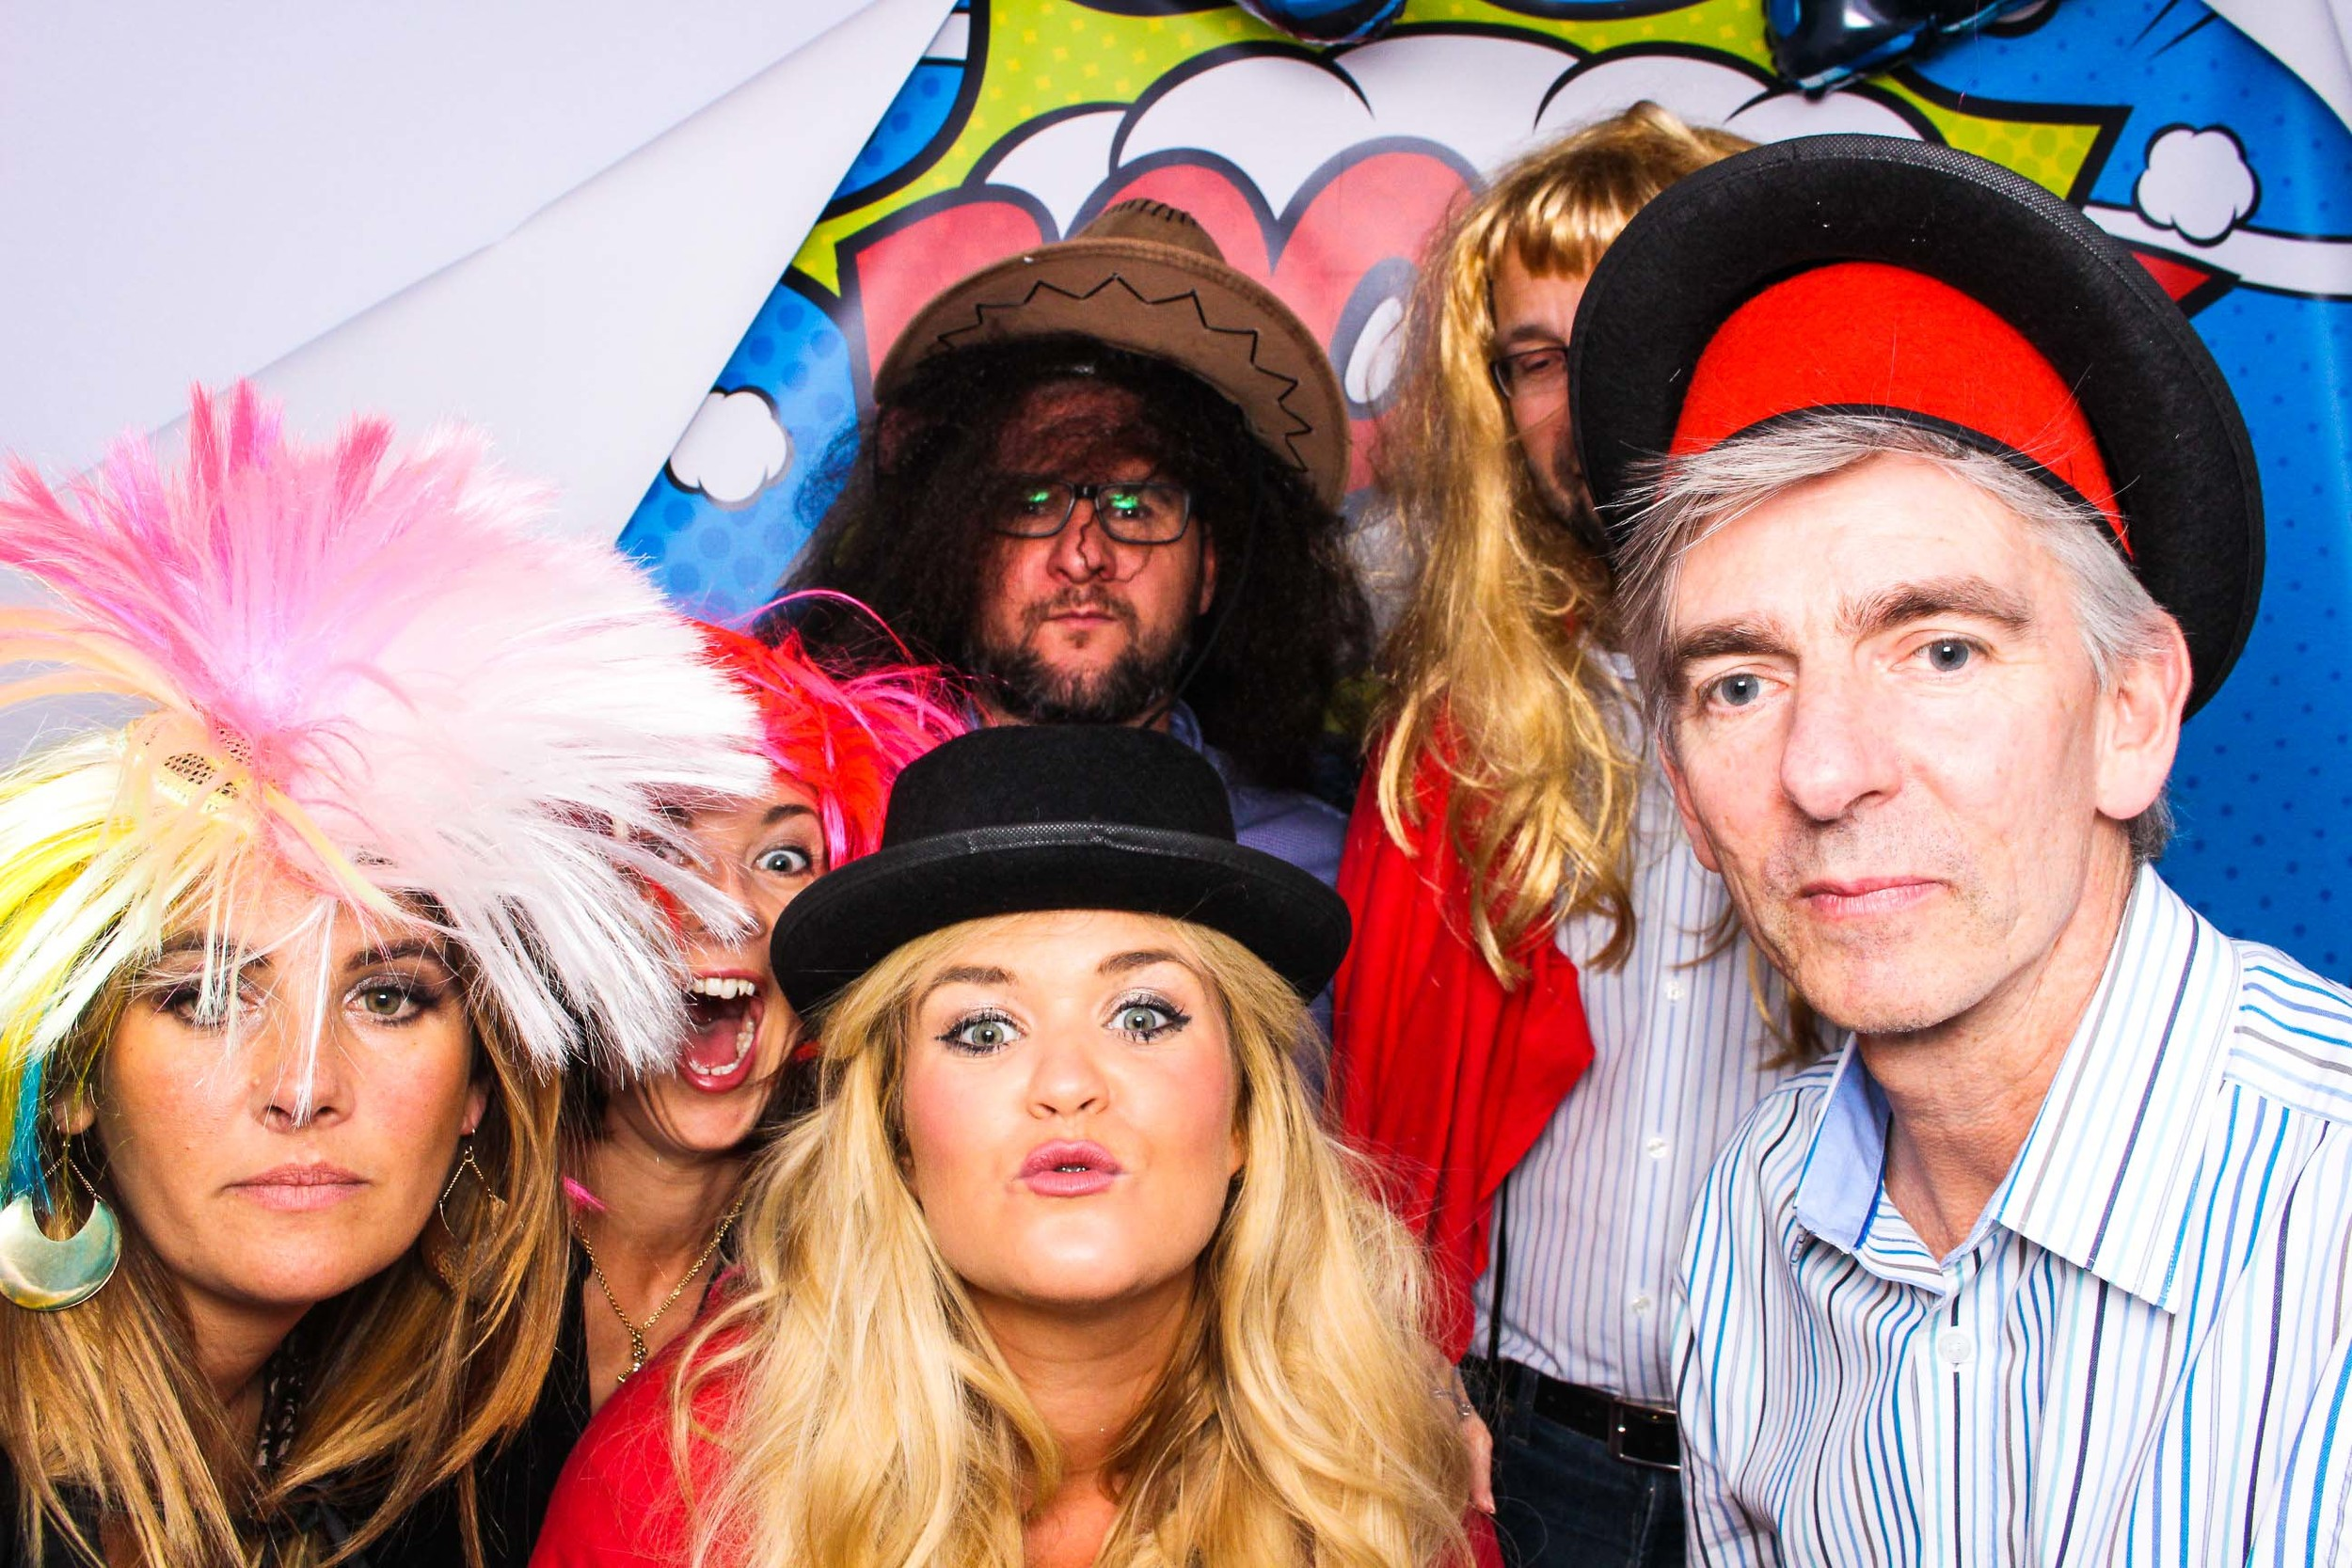 Fotoauto Photo Booth Hire - Shop Direct-157.jpg